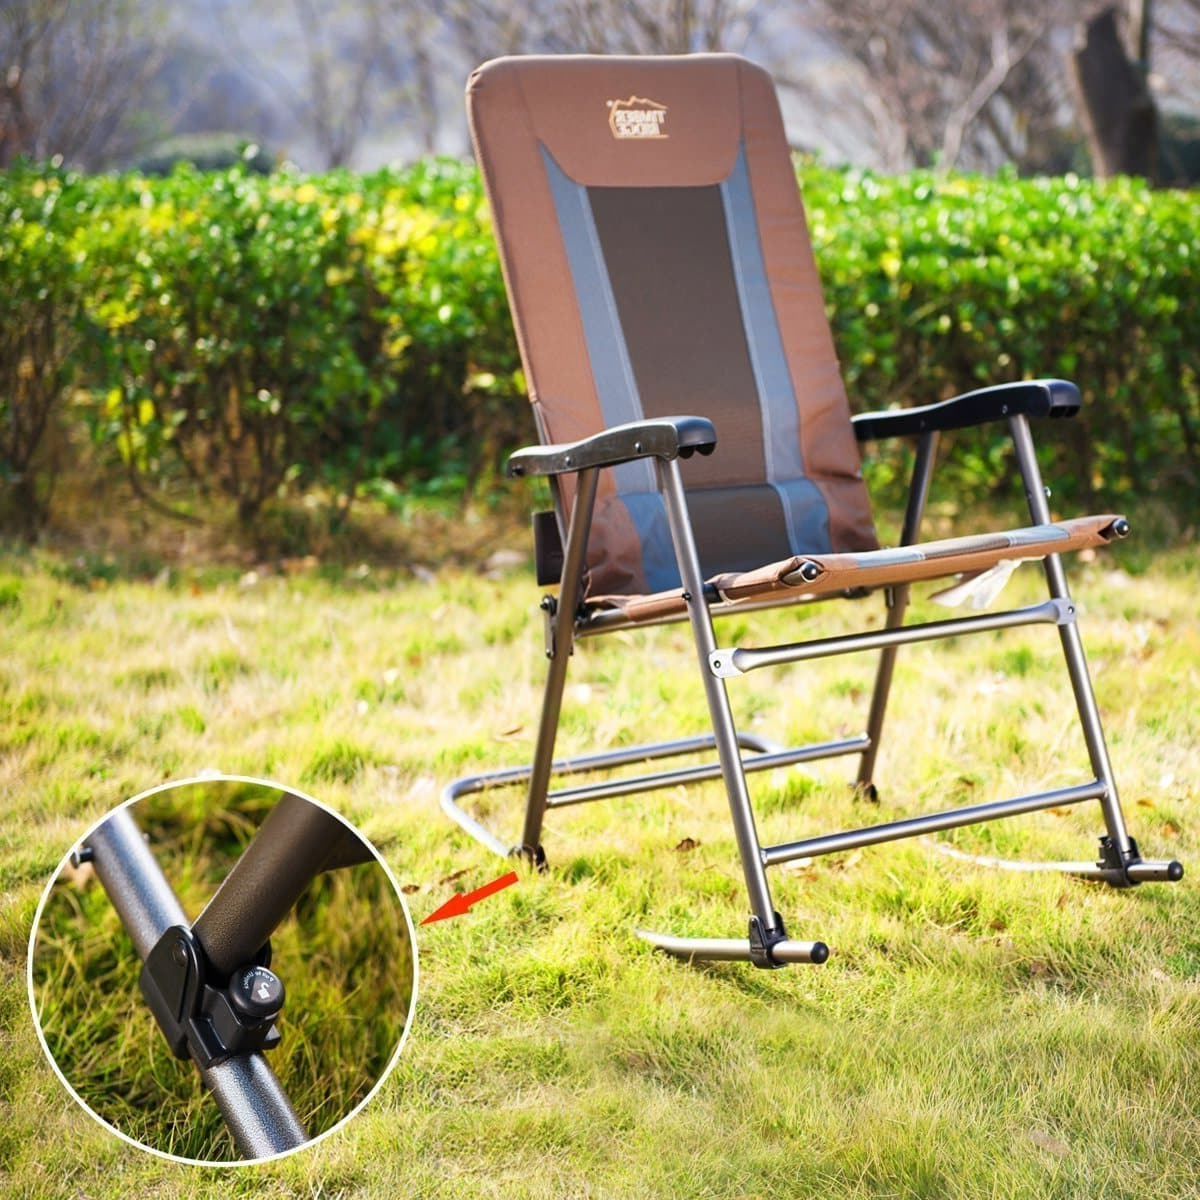 Iron Frame Locking Portable Folding Chairs Inside 2020 Top 10 Best Folding Chairs Reviews In 2019 – Top Best Products (Gallery 19 of 25)